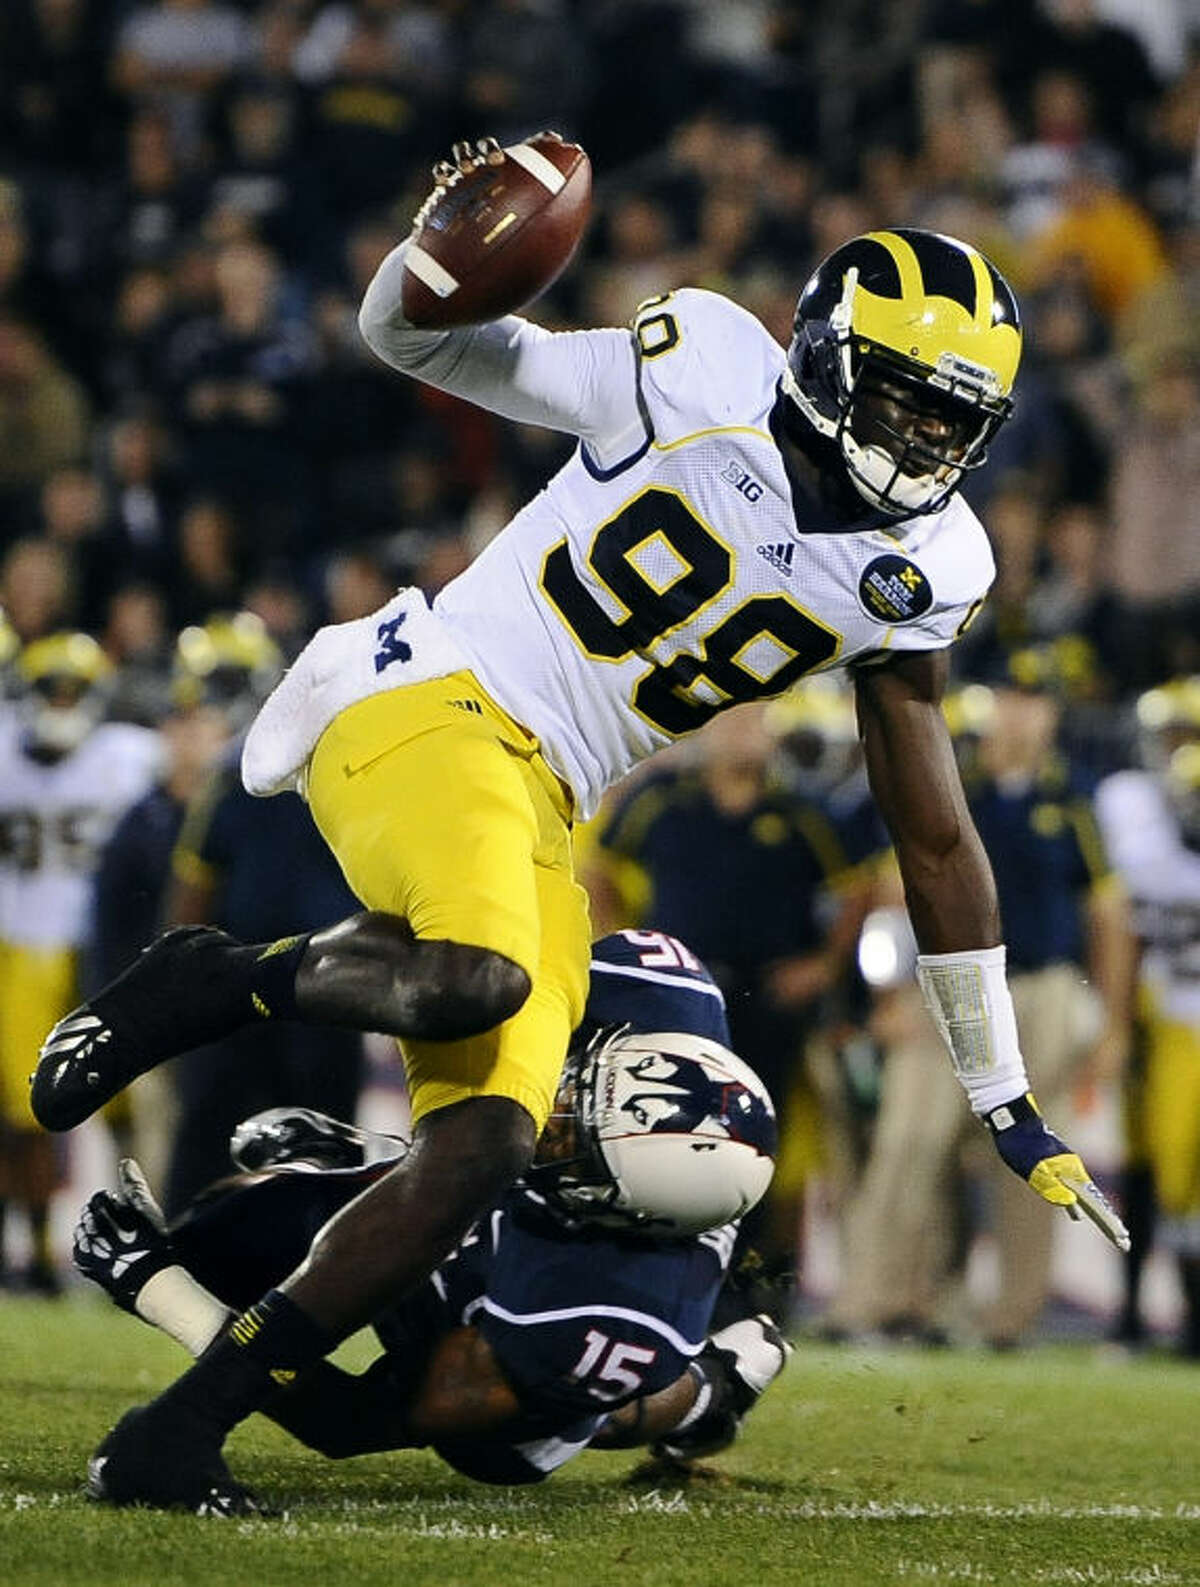 Michigan quarterback Devin Gardner (98), top, breaks past Connecticut safety Ty-Meer Brown (15) for a touchdown during the first half of an NCAA college football game at Rentschler Field, Saturday, Sept. 21, 2013, in East Hartford, Conn. (AP Photo/Jessica Hill)